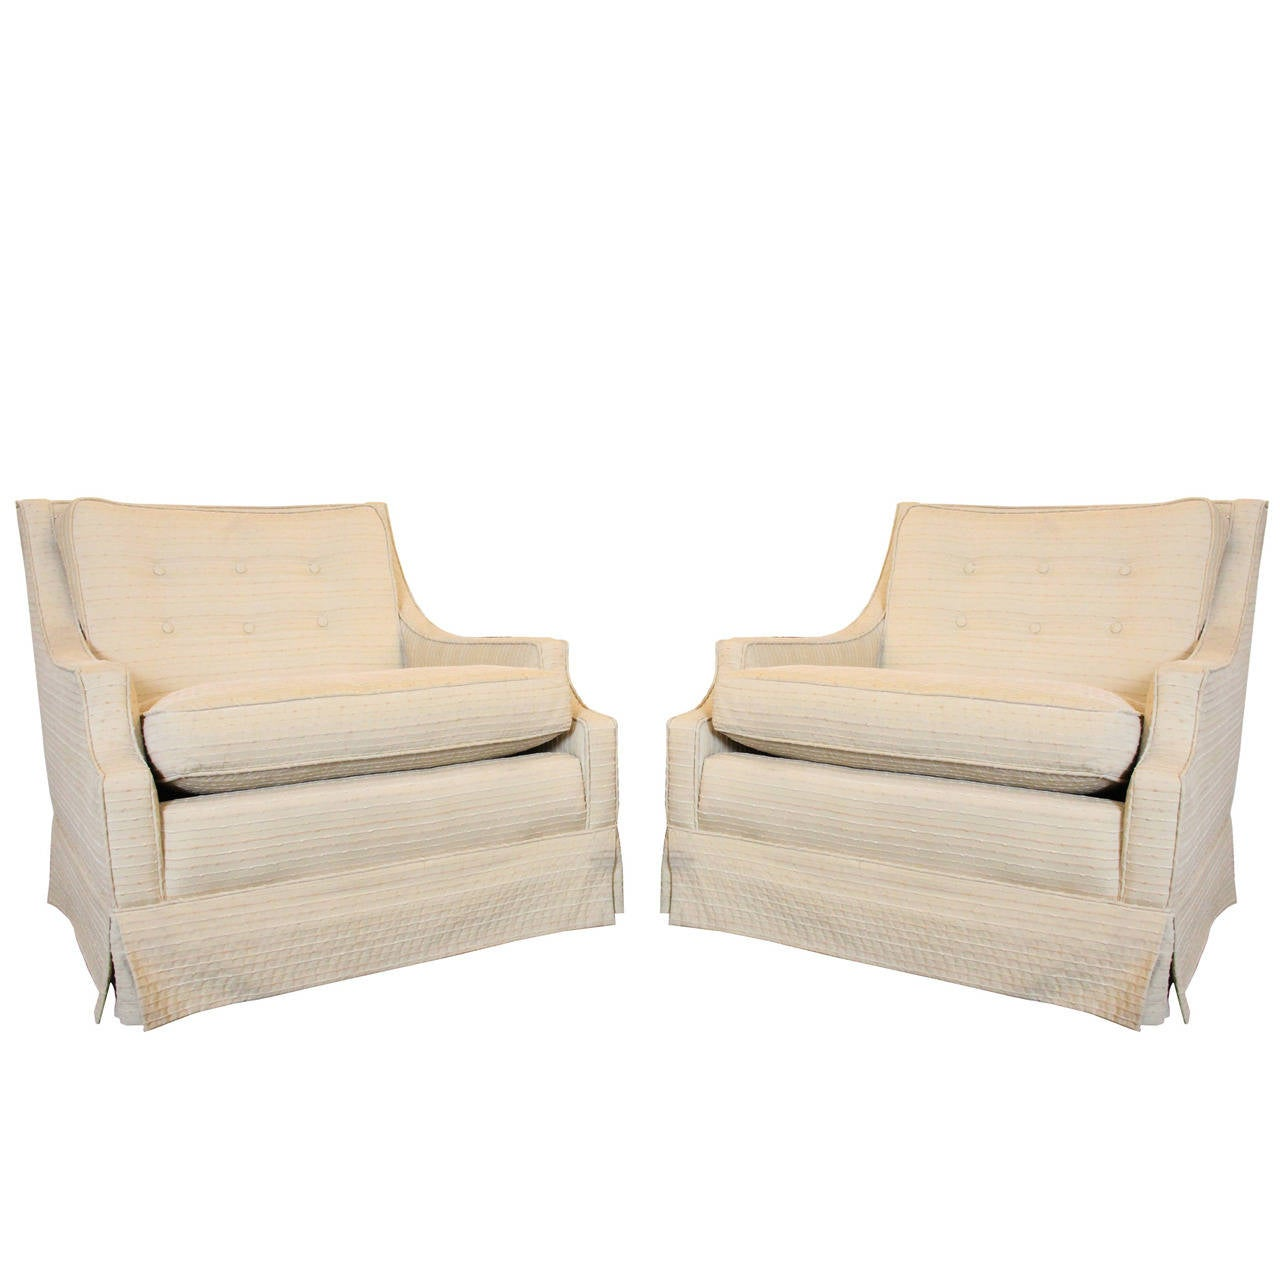 Pair of regency lounge chairs at 1stdibs for Pair of chairs for living room